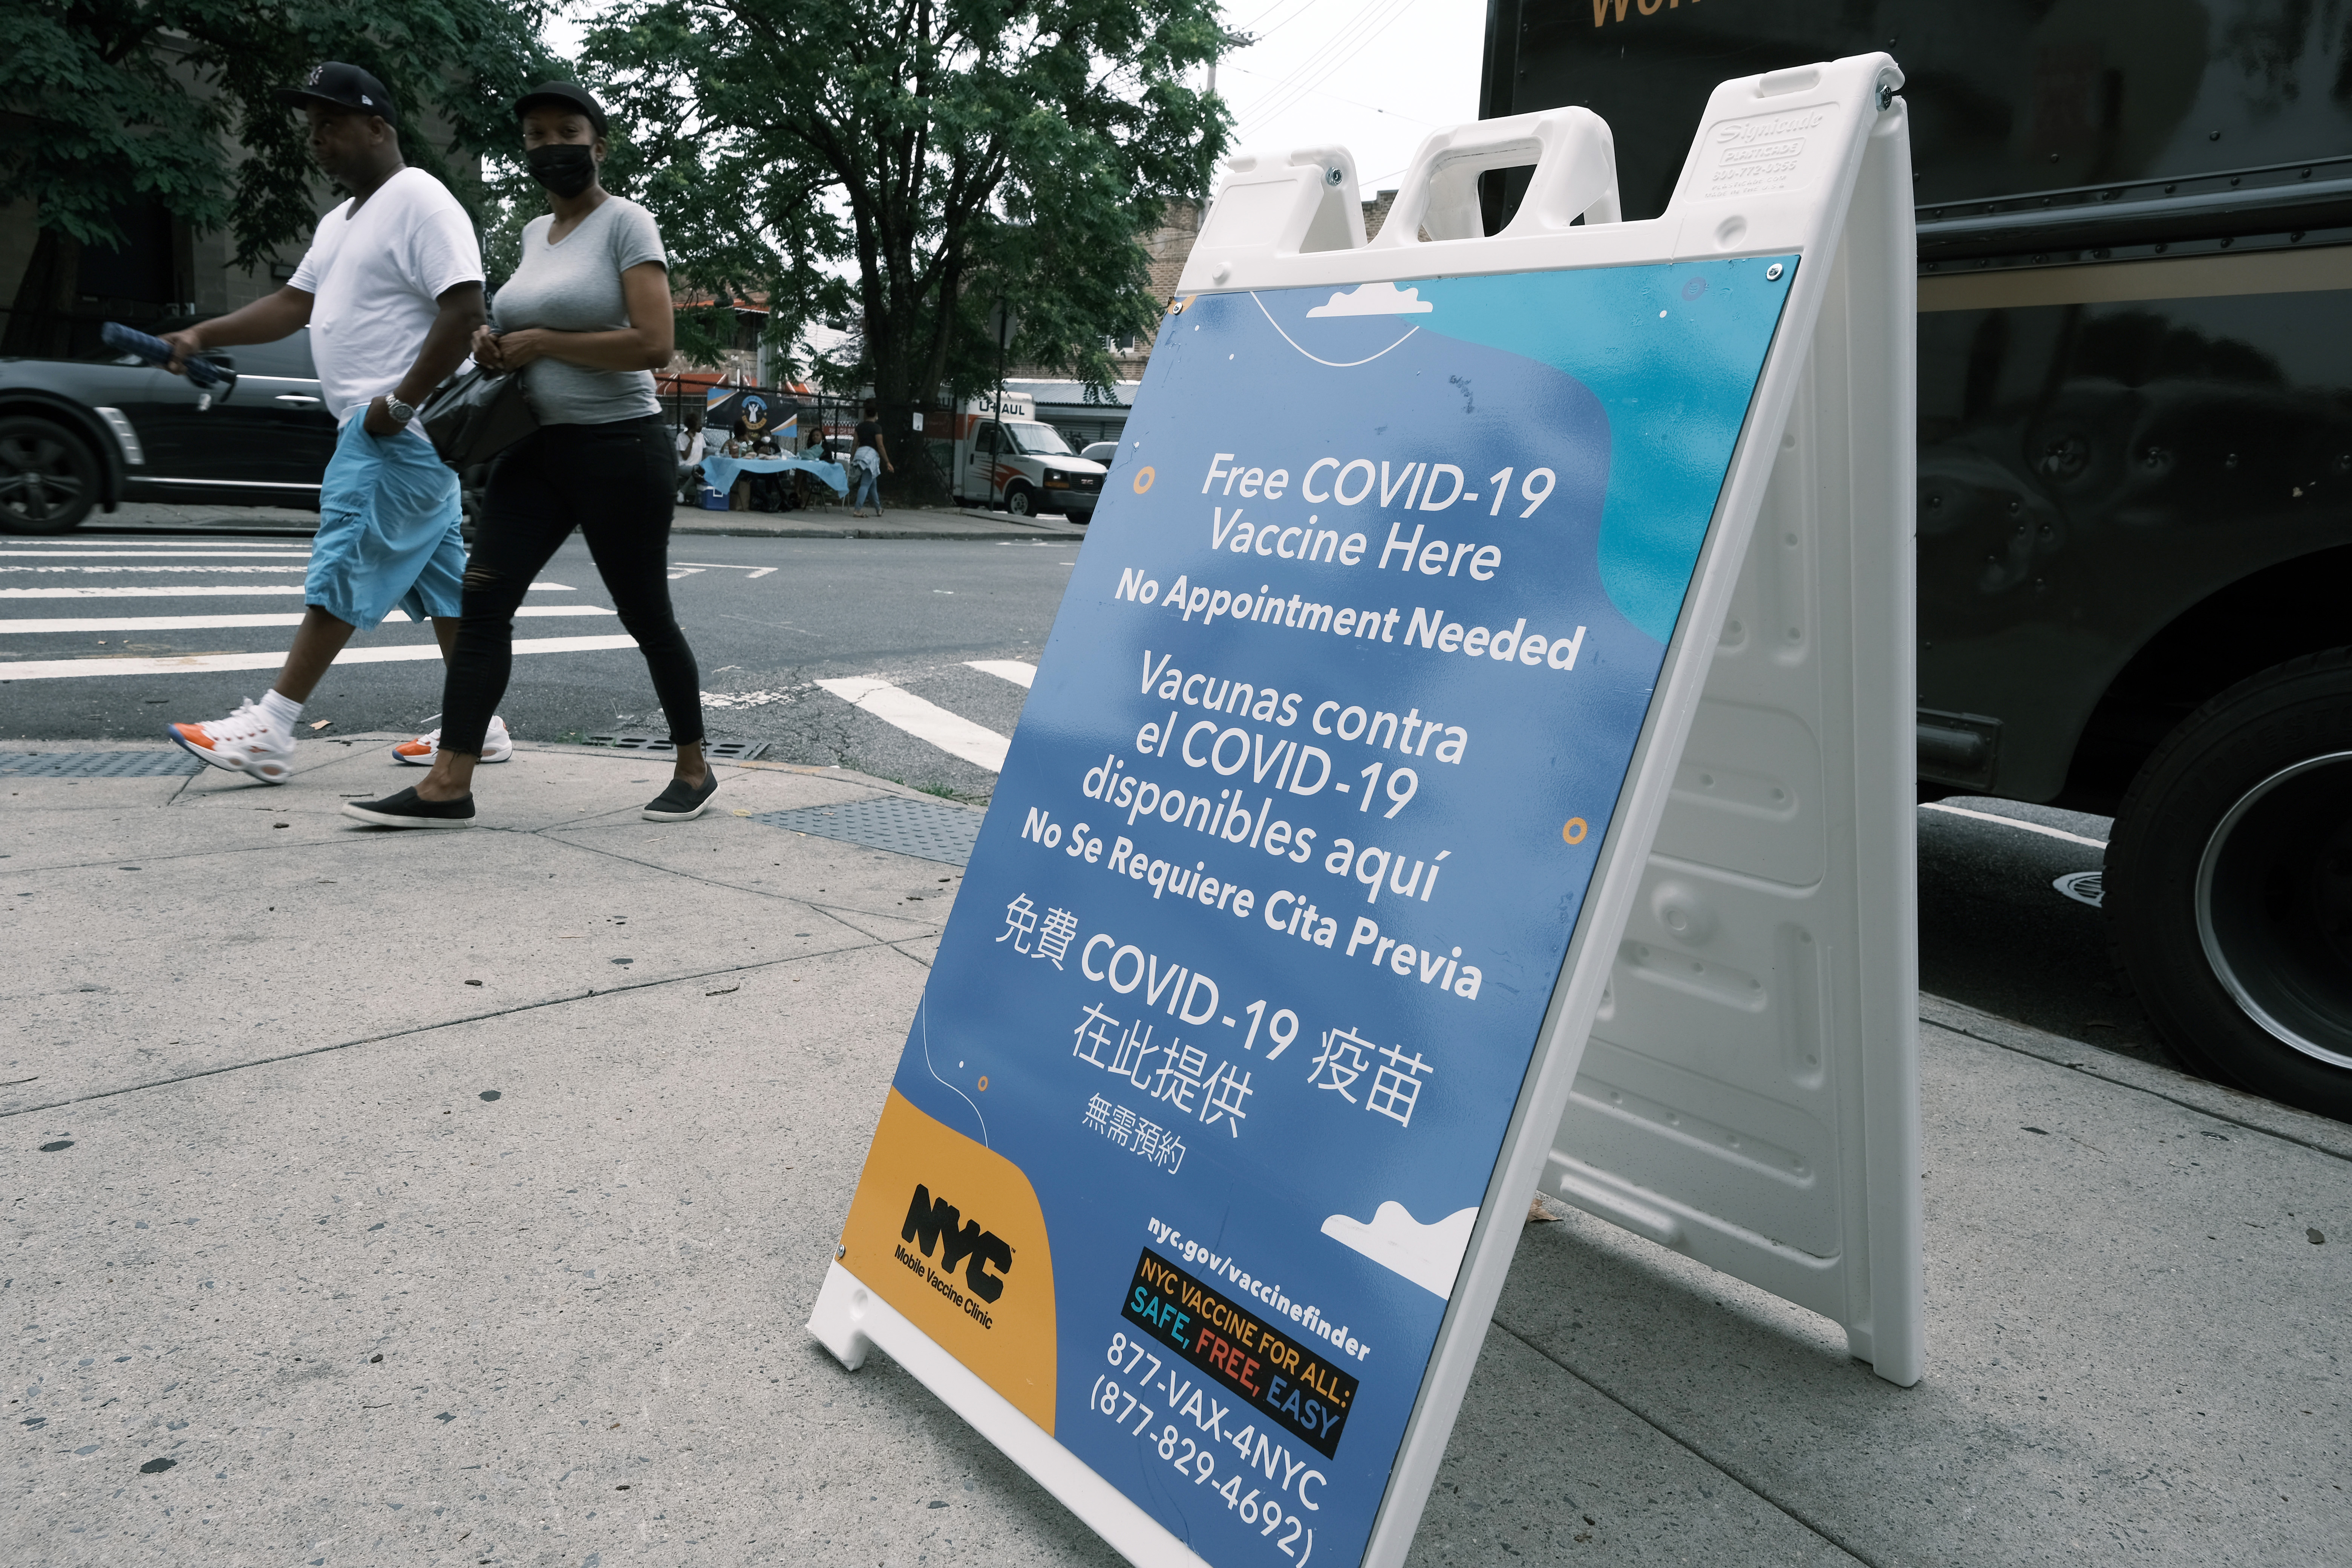 A city run vaccination site stands in a Brooklyn neighborhood which is witnessing a rise in COVID-19 cases on July 13, 2021 in New York City.